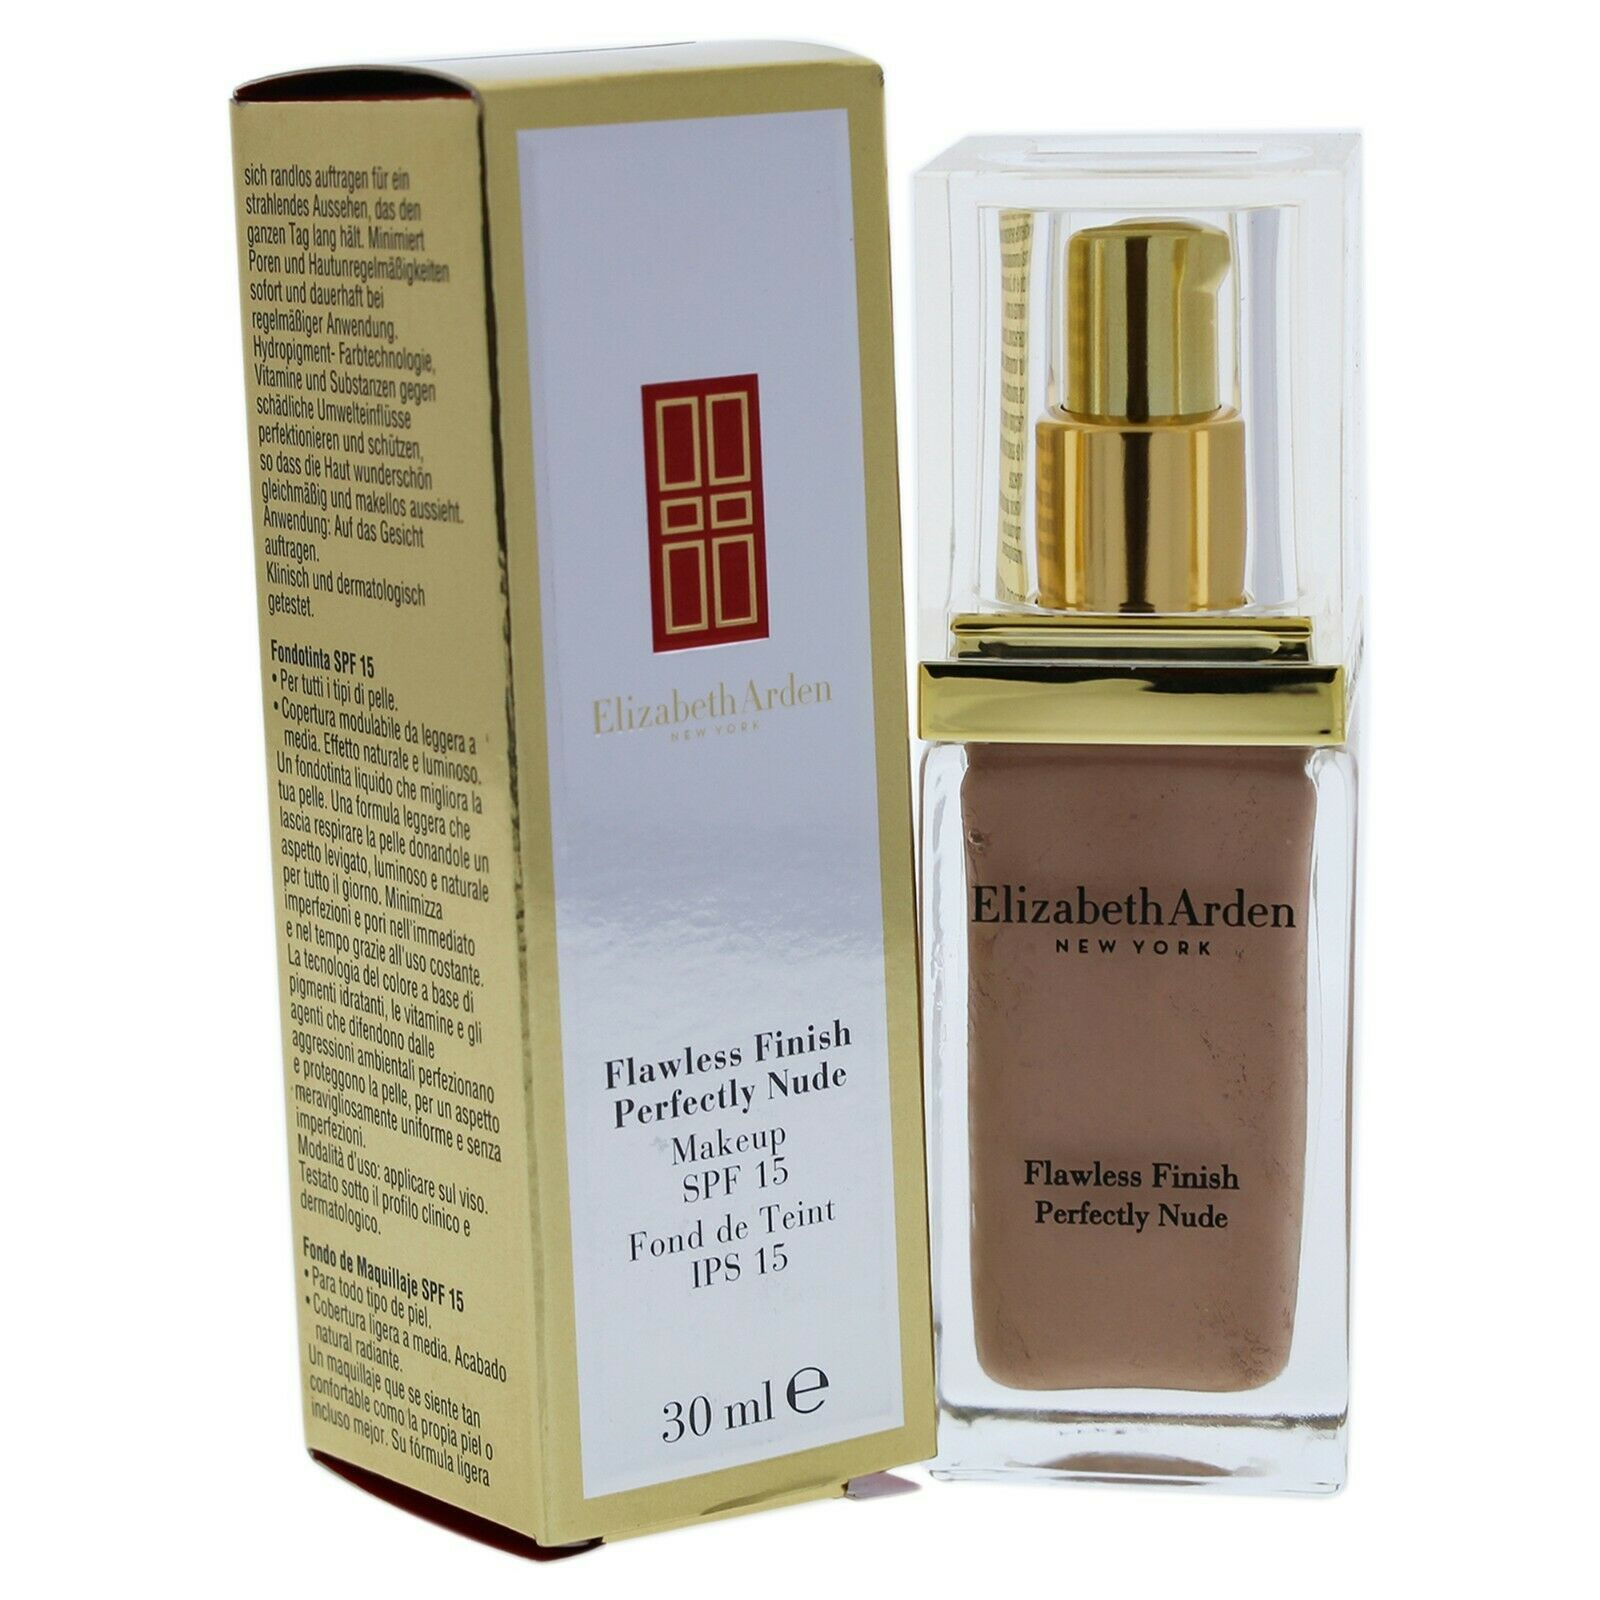 Primary image for Flawless Finish Perfectly Nude SPF 15 by Elizabeth Arden - 14 Cameo